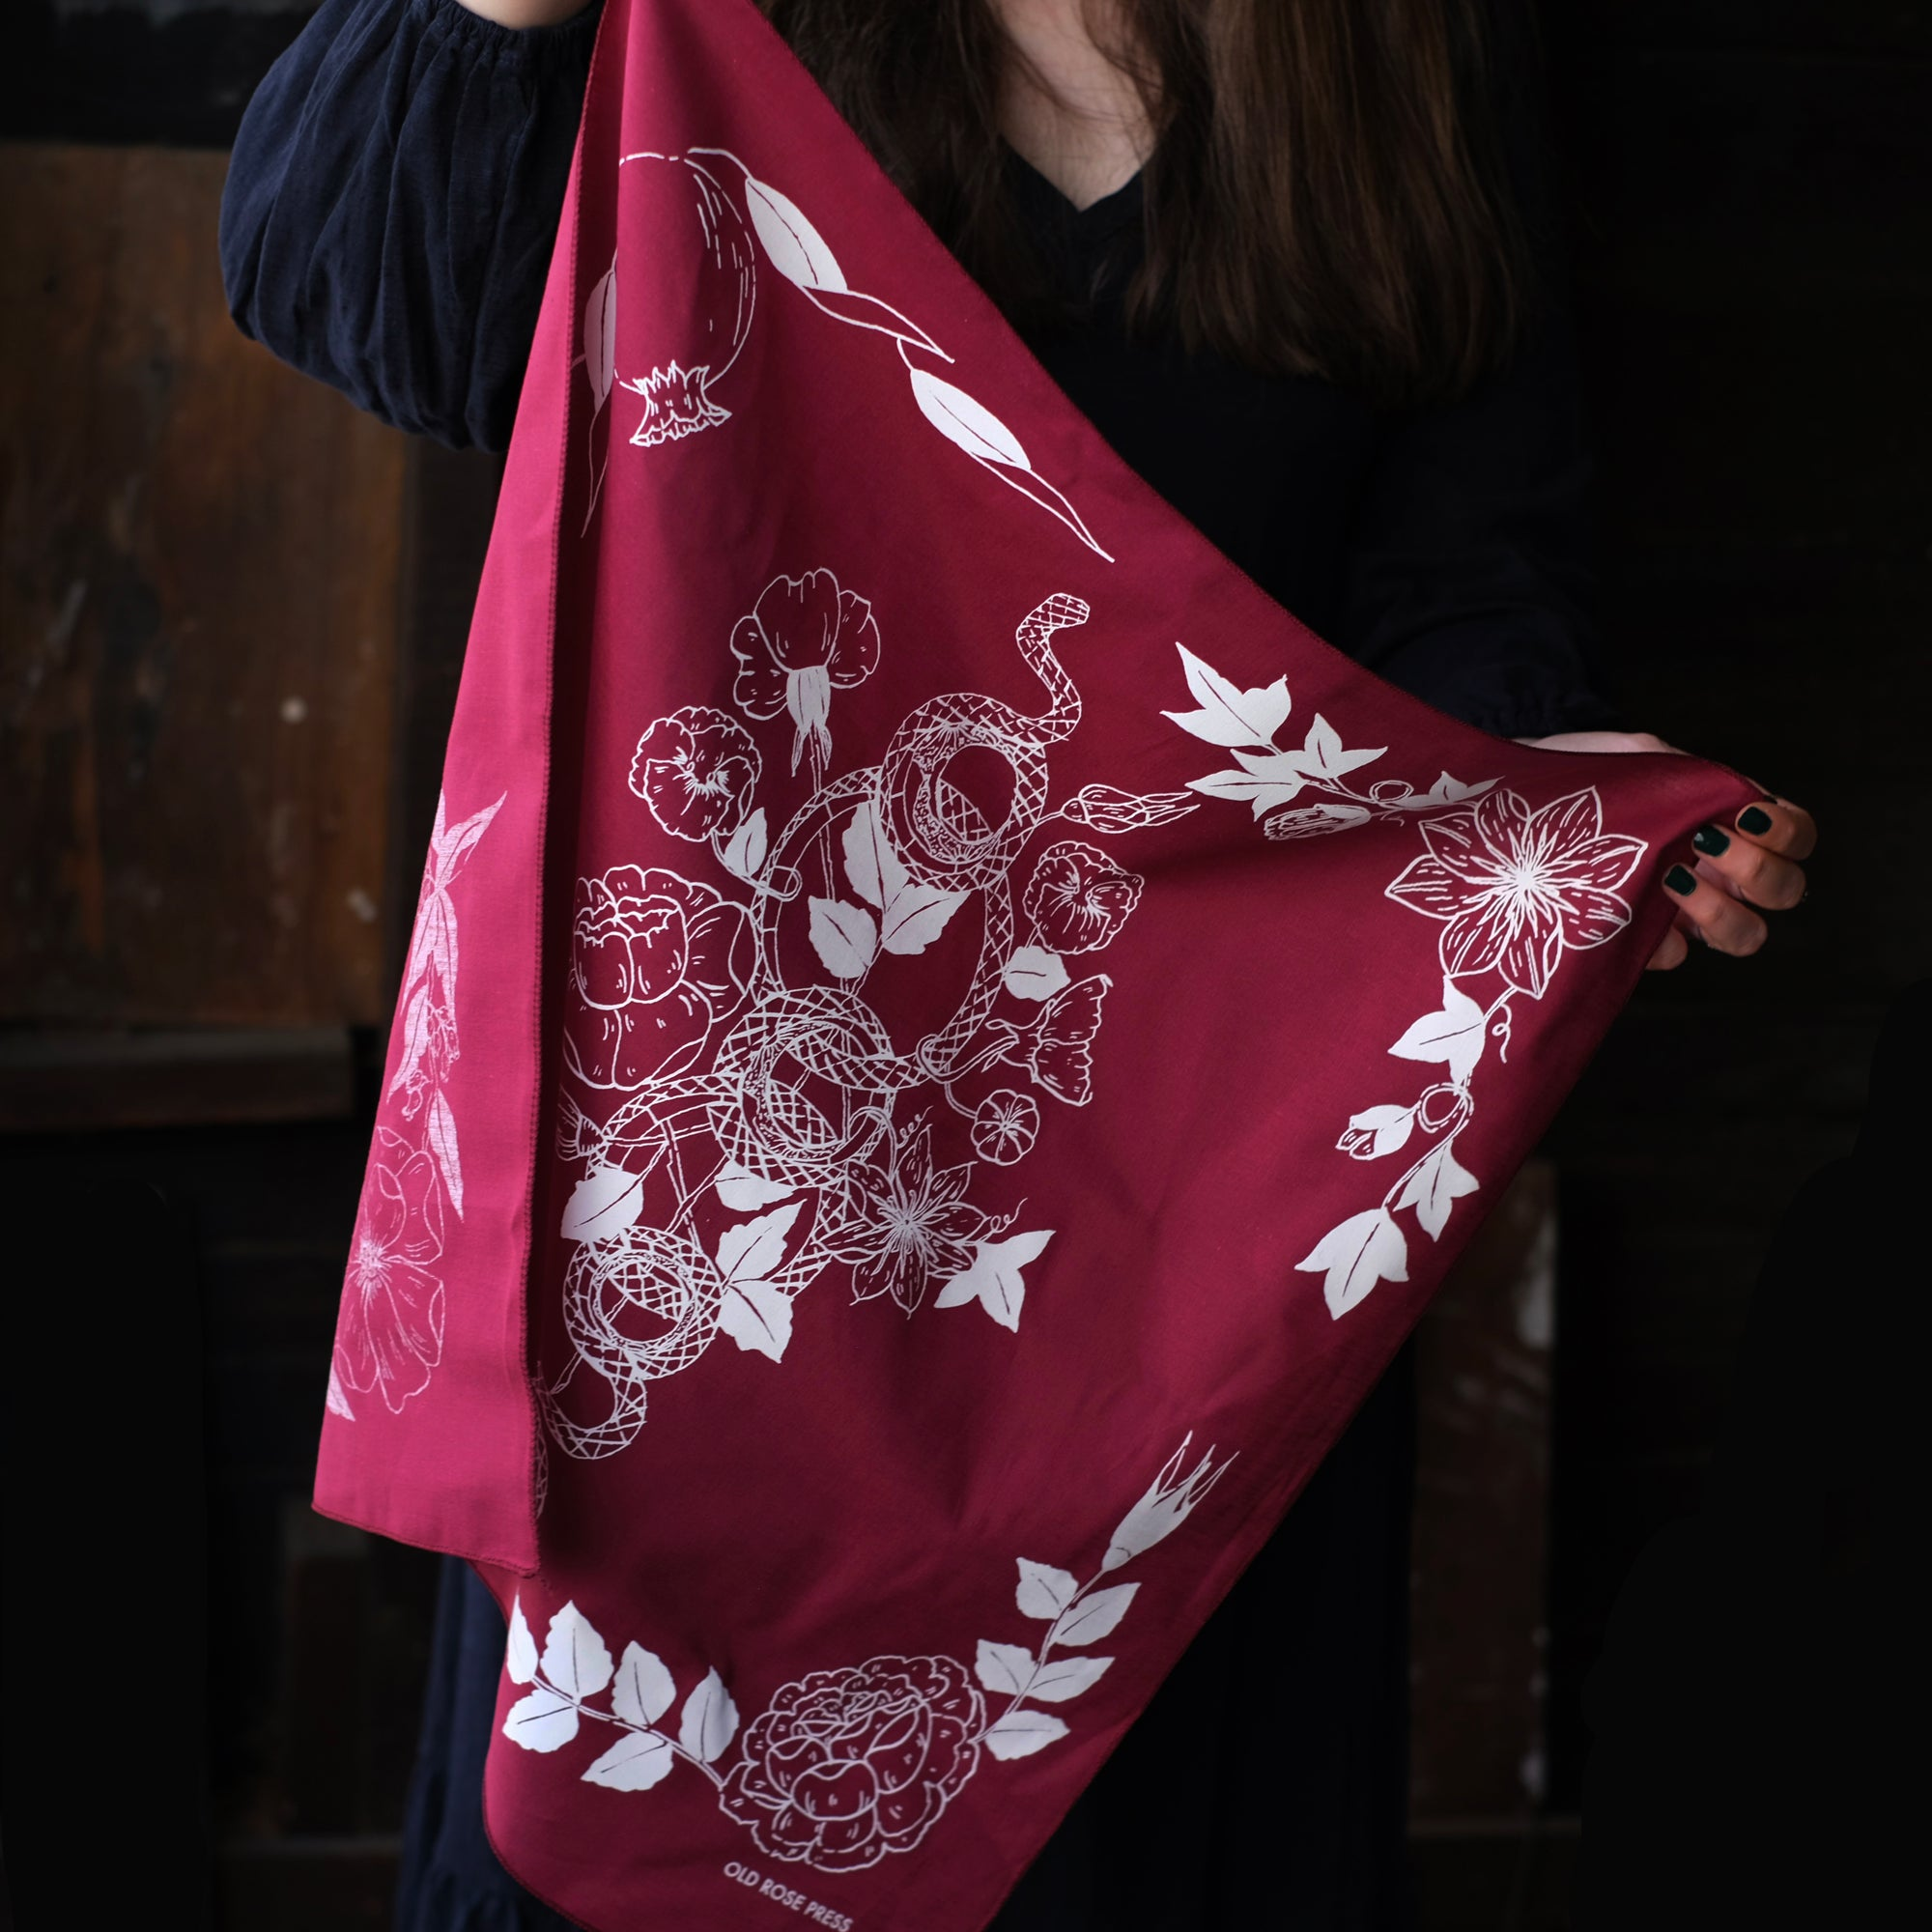 Serpent Garden Bandana reflects the botanicals throughout the four seasons, alongside a plant adorned snake. Artisan printed and illustrated by hand, to be used as an accessory or altar cloth.